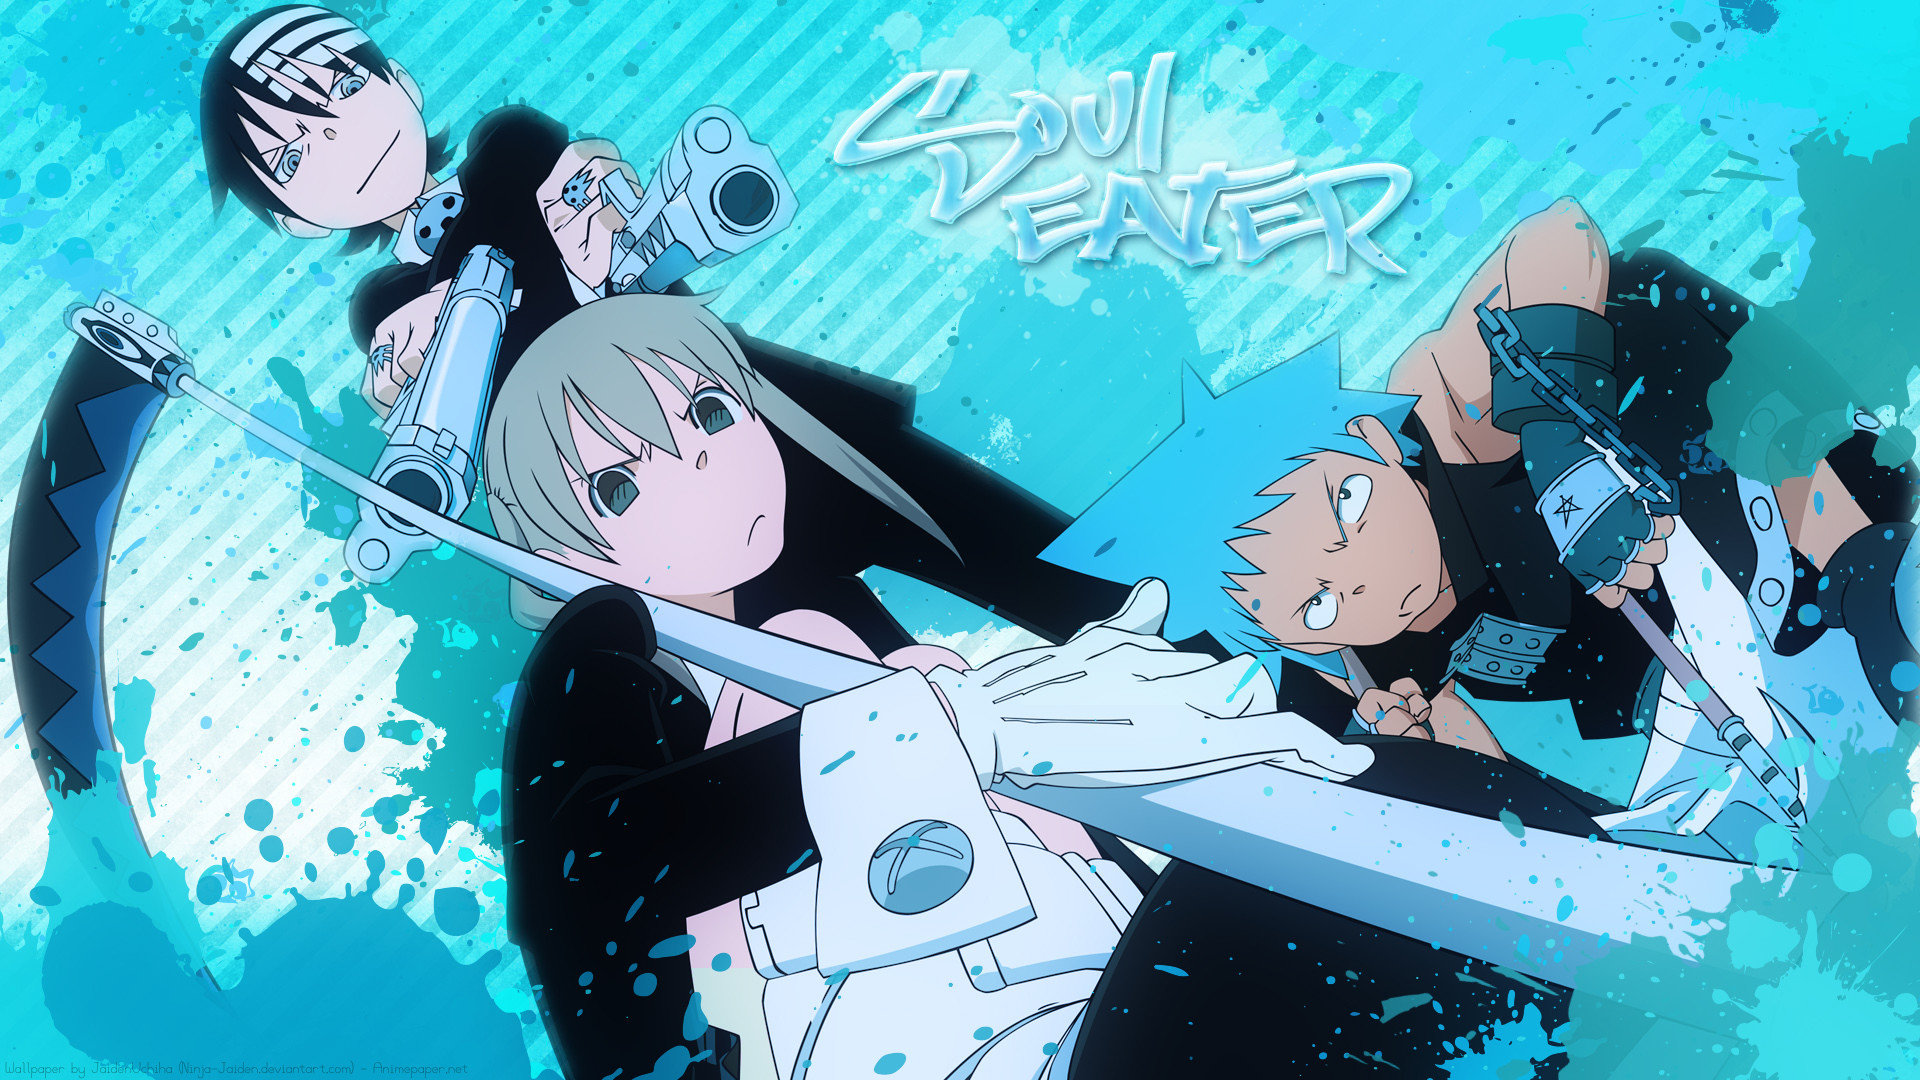 Awesome Soul Eater Free Background ID469710 For Hd 1920x1080 PC